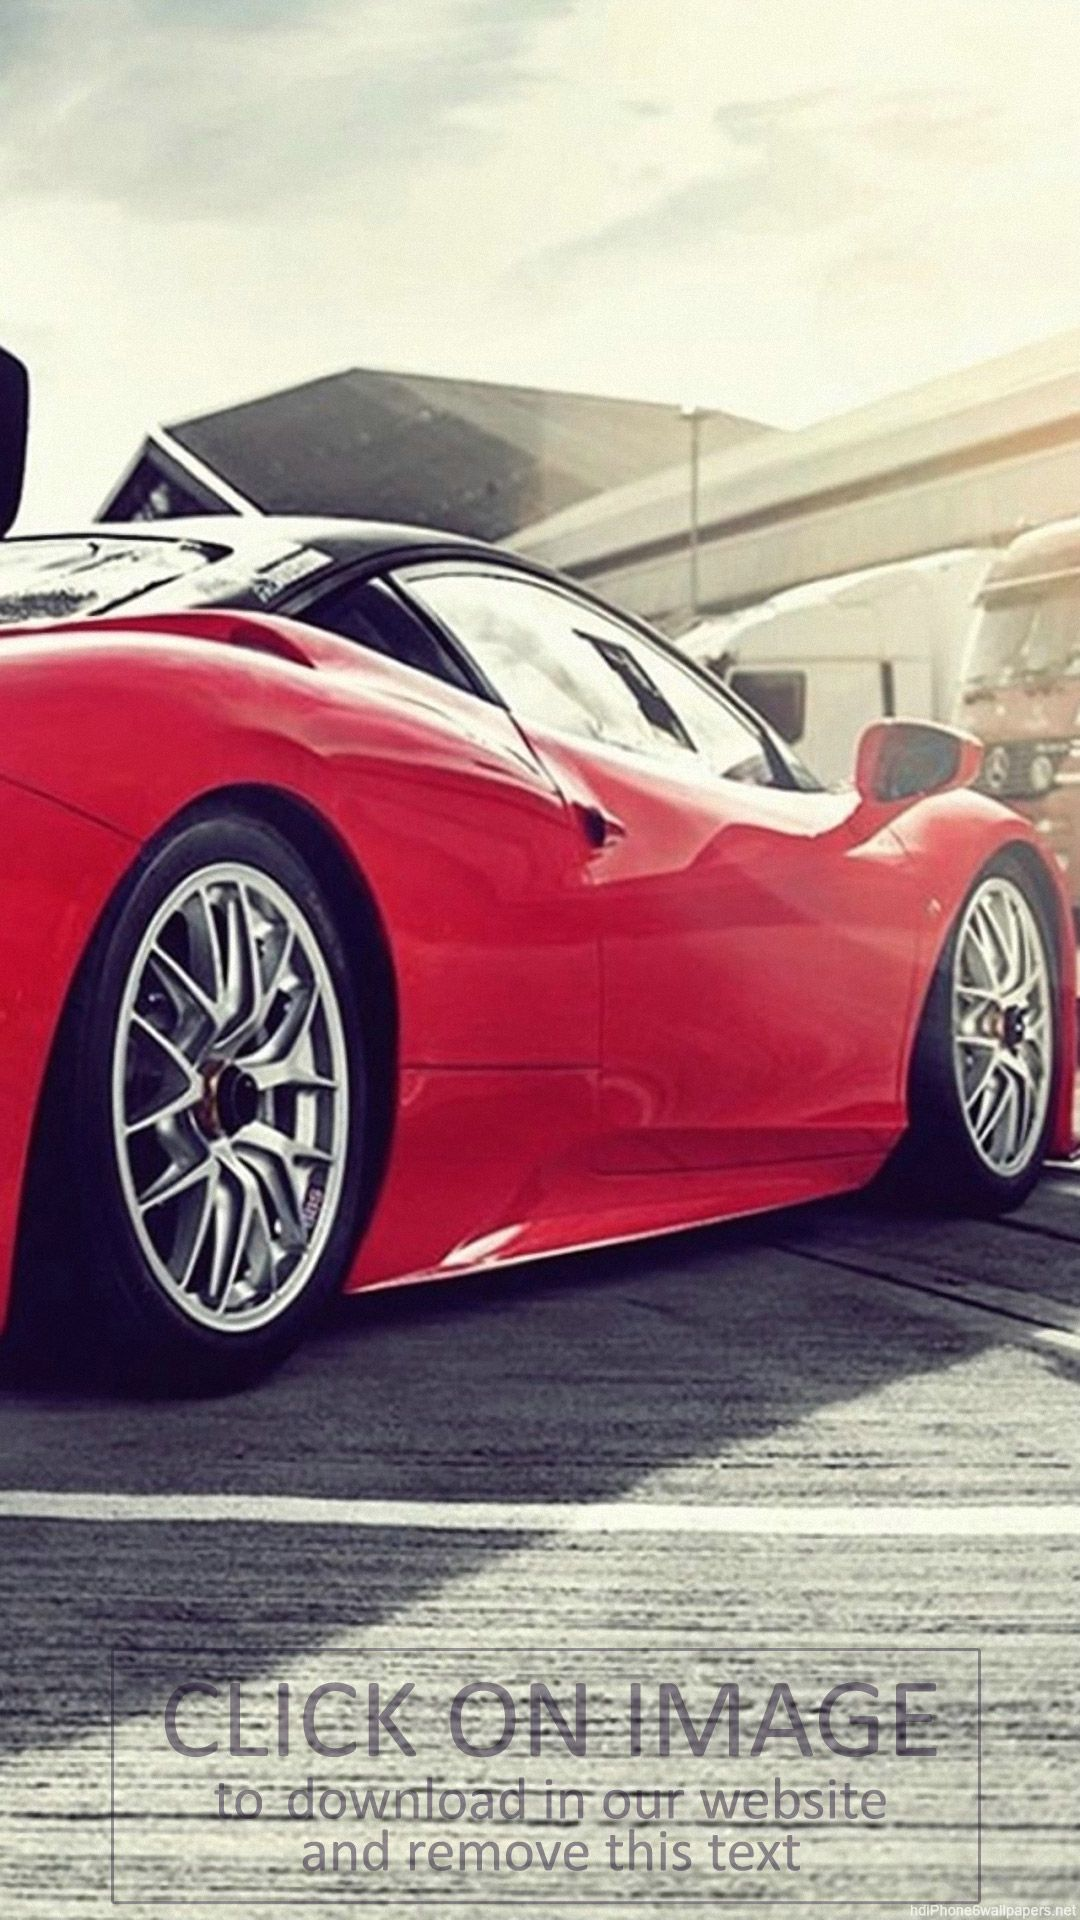 Wallpaper Car Hd High Resolution 1080 X 1920 For Iphone Mobile Android Ferrari 458 Wallpaper Iphone